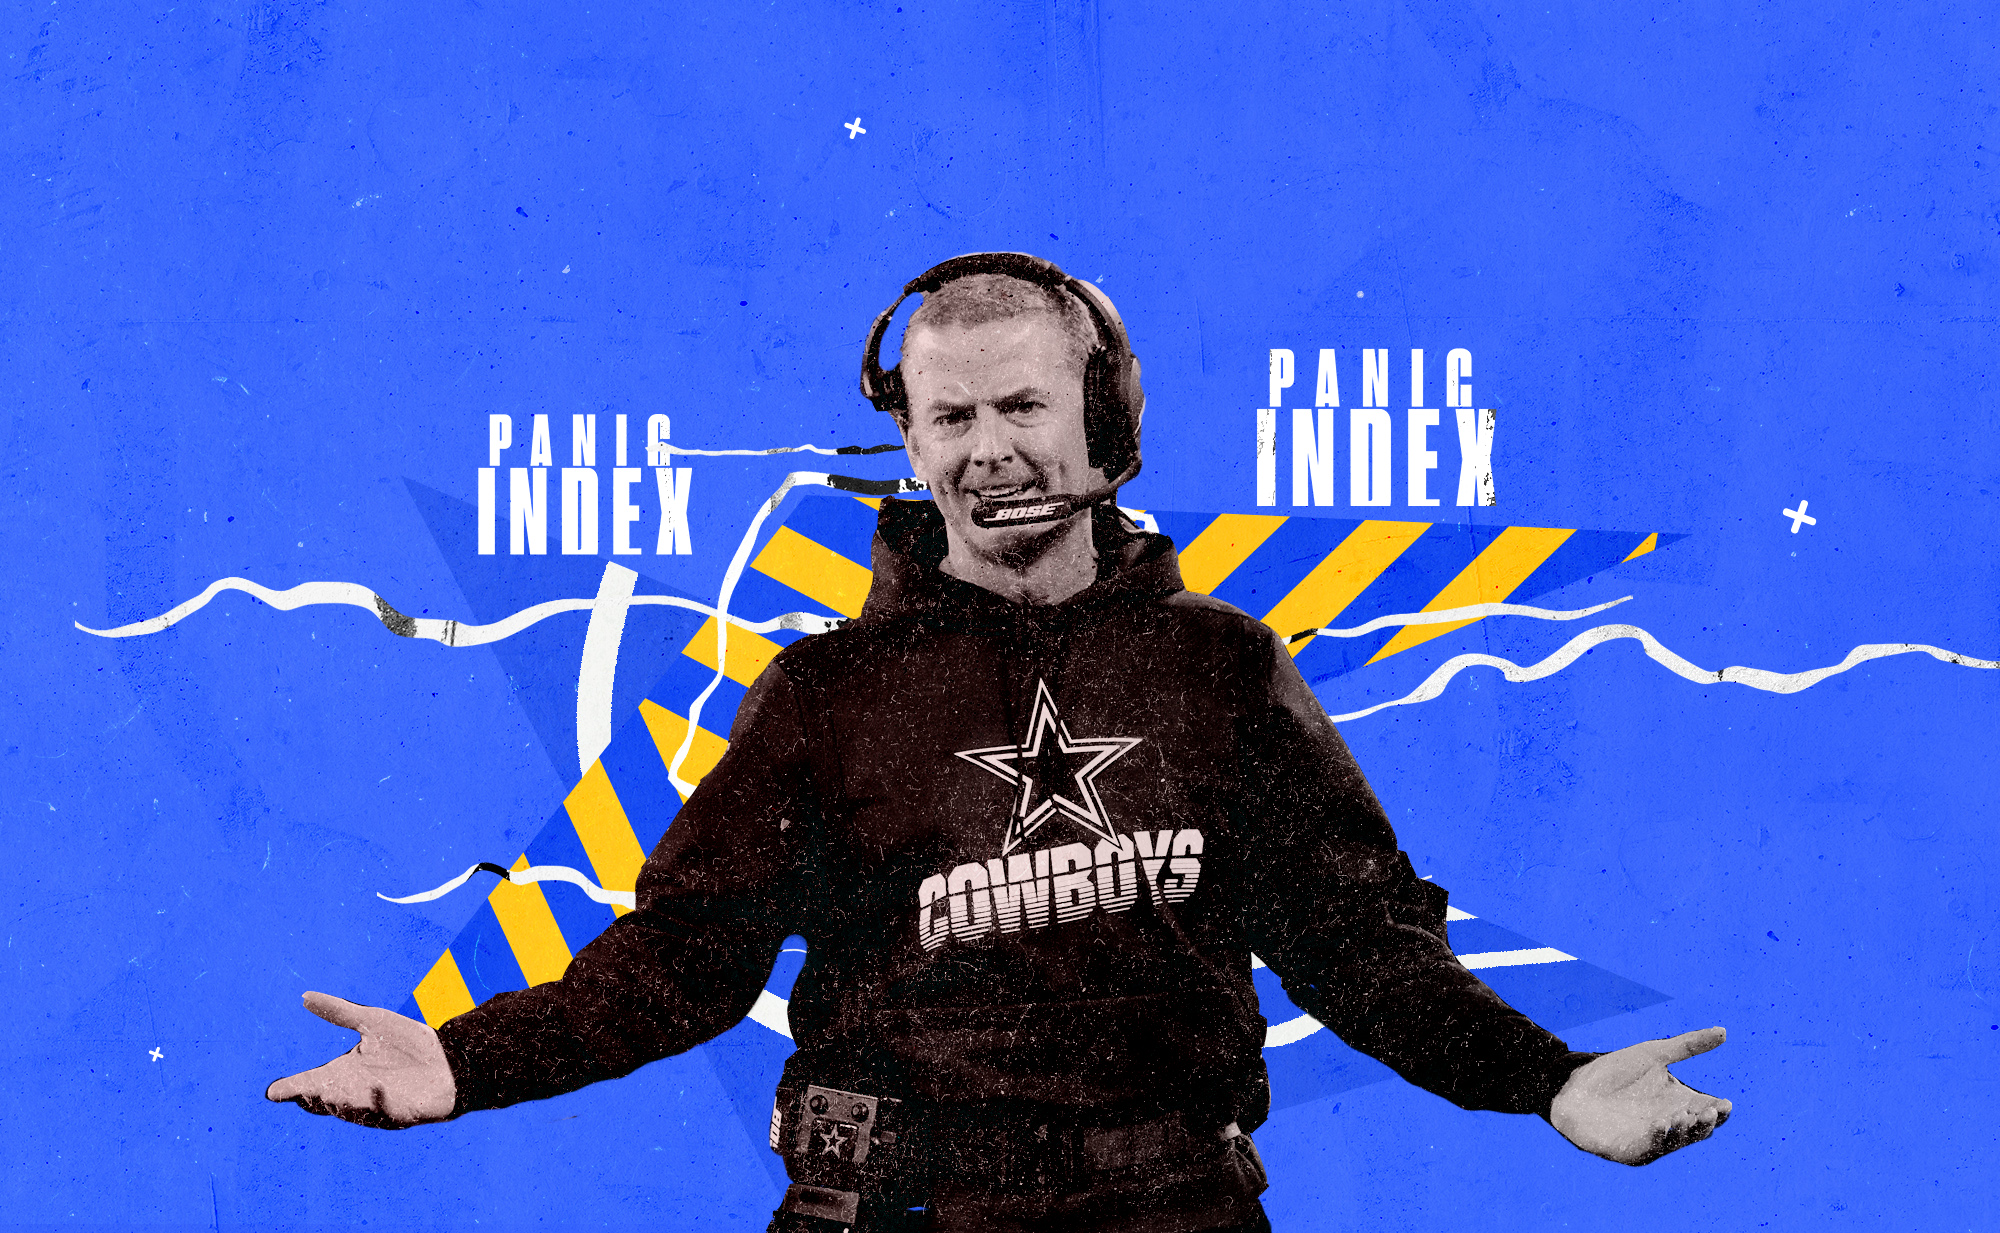 """Cowboys coach Jason Garrett holds his arms out in disbelief, superimposed on a blue and yellow background and the words """"PANIC INDEX"""" in white"""